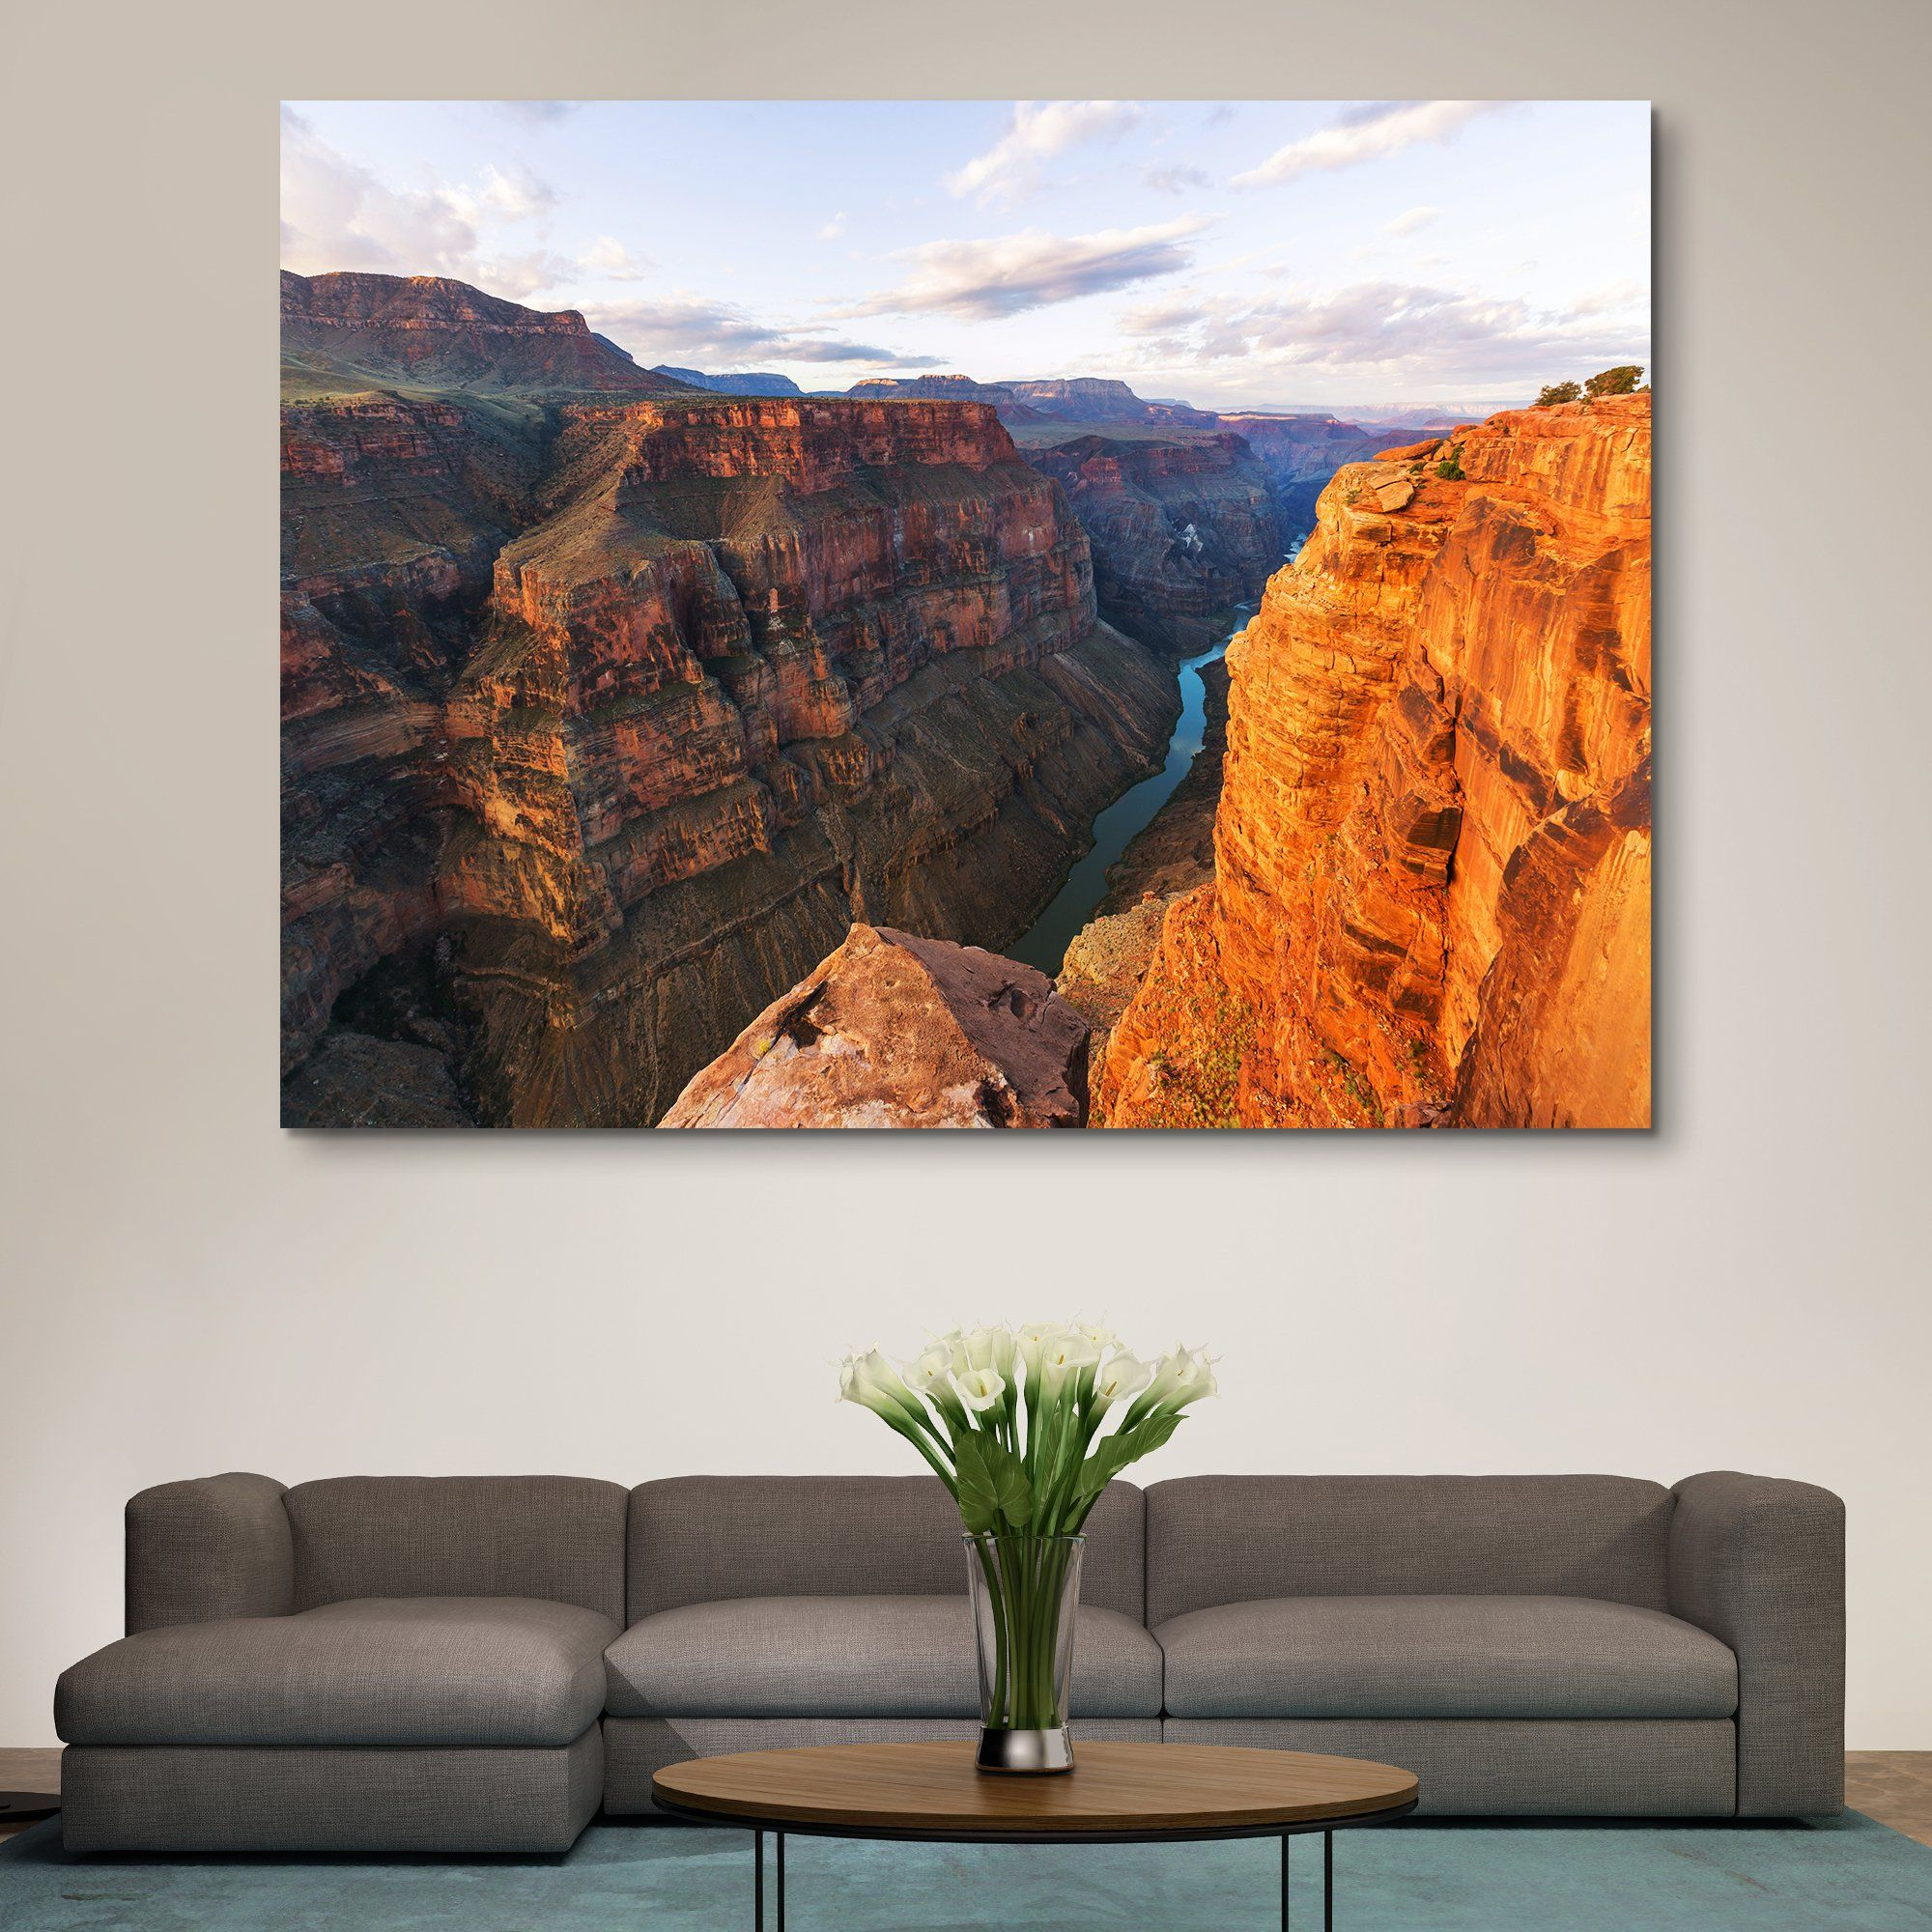 Grand Canyon National Park wall art